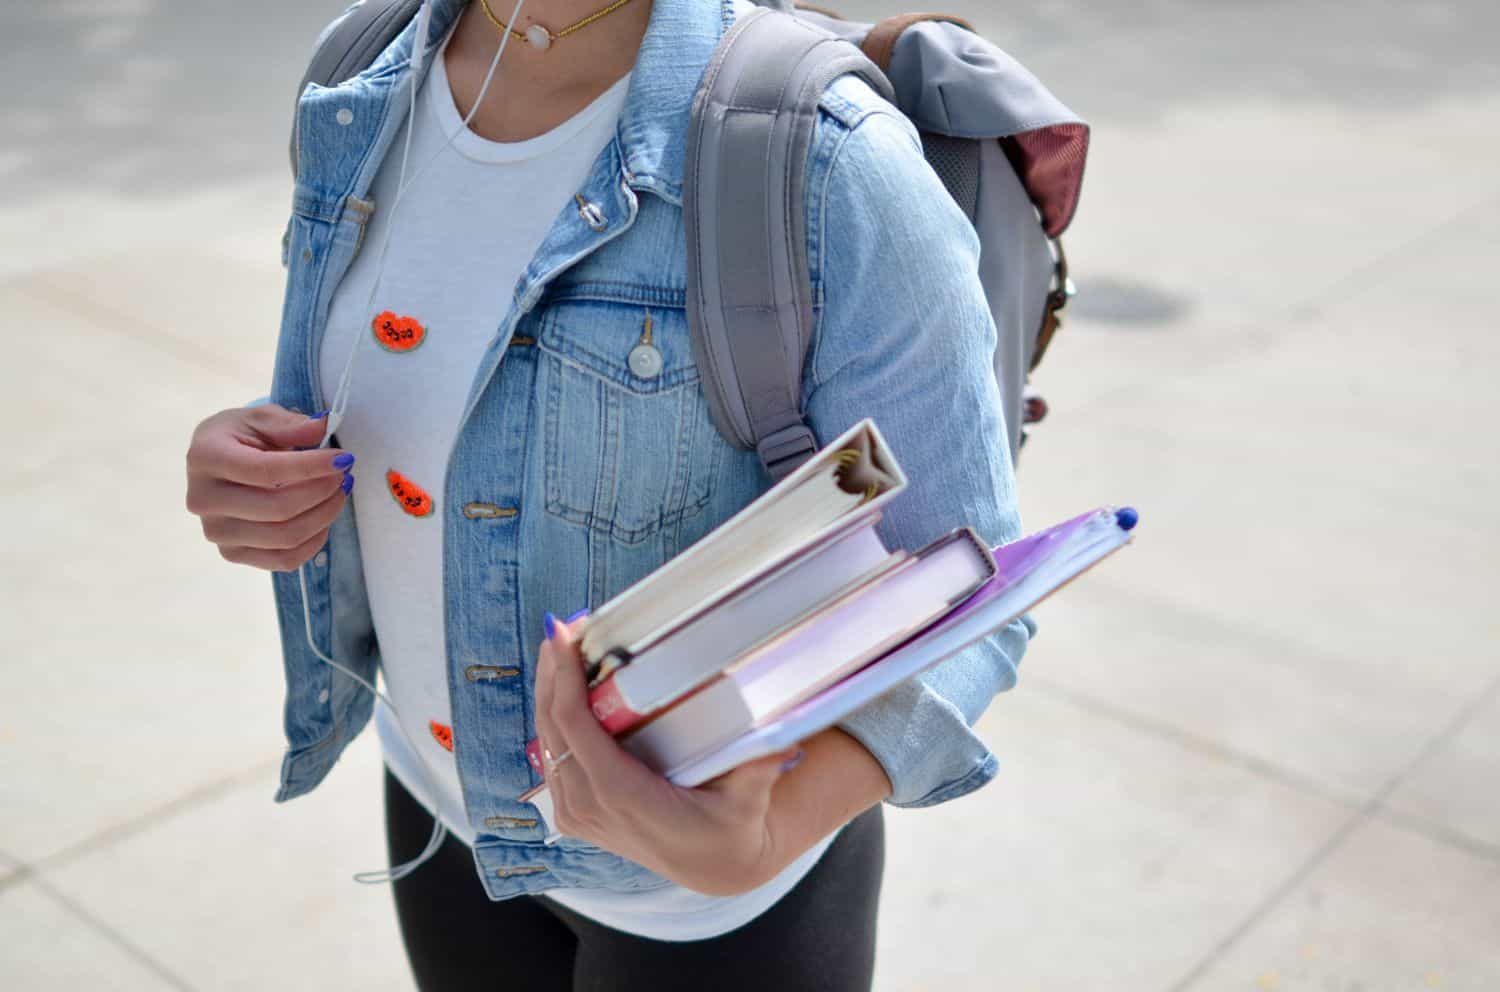 A student carrying her backpack and books while listening to music